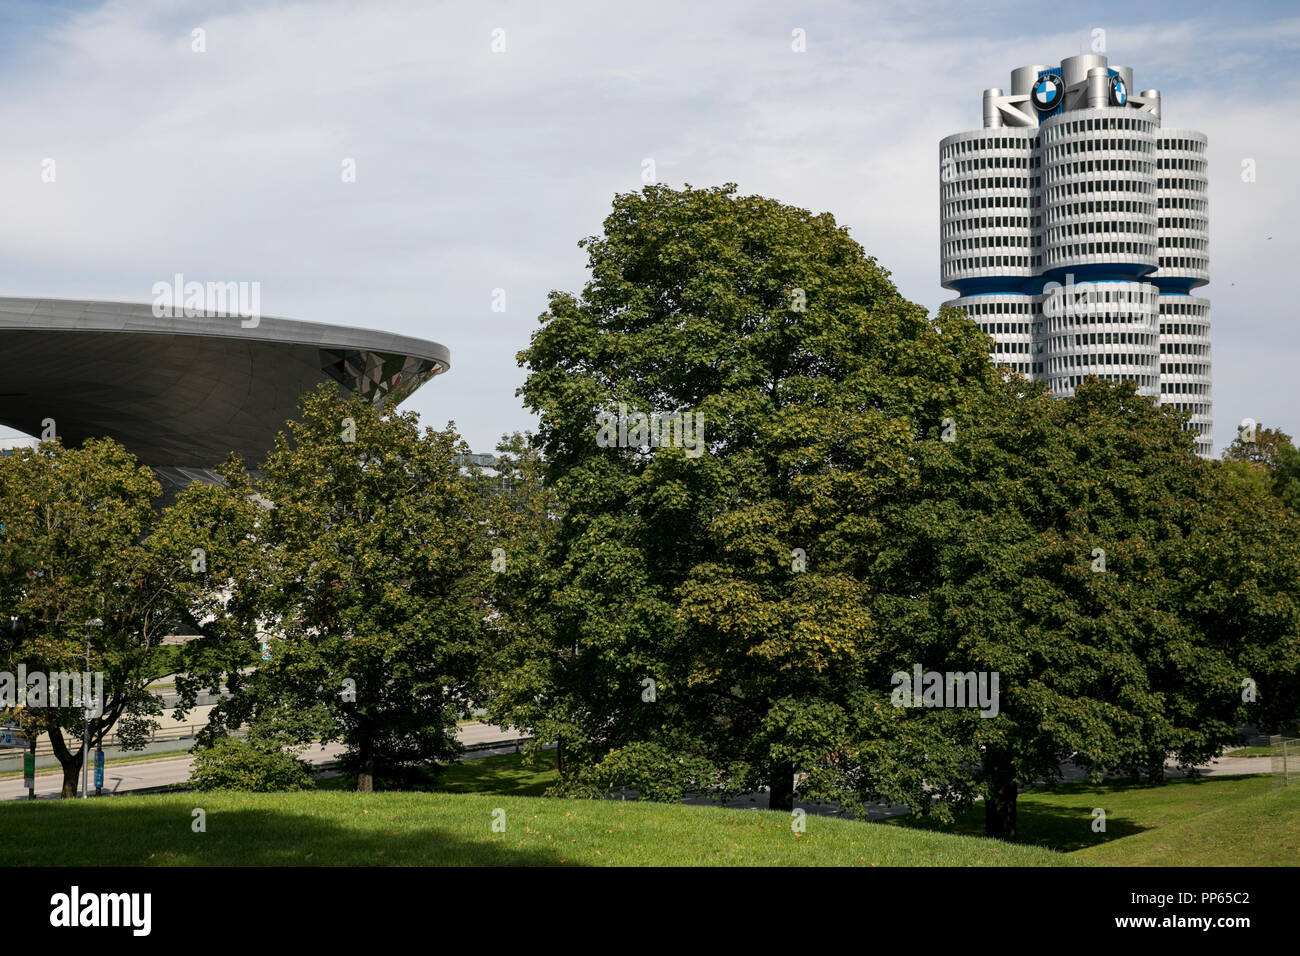 A logo sign outside of the headquarters of the BMW Group (Bayerische Motoren Werke) in Munich, Germany, on September 9, 2018. - Stock Image